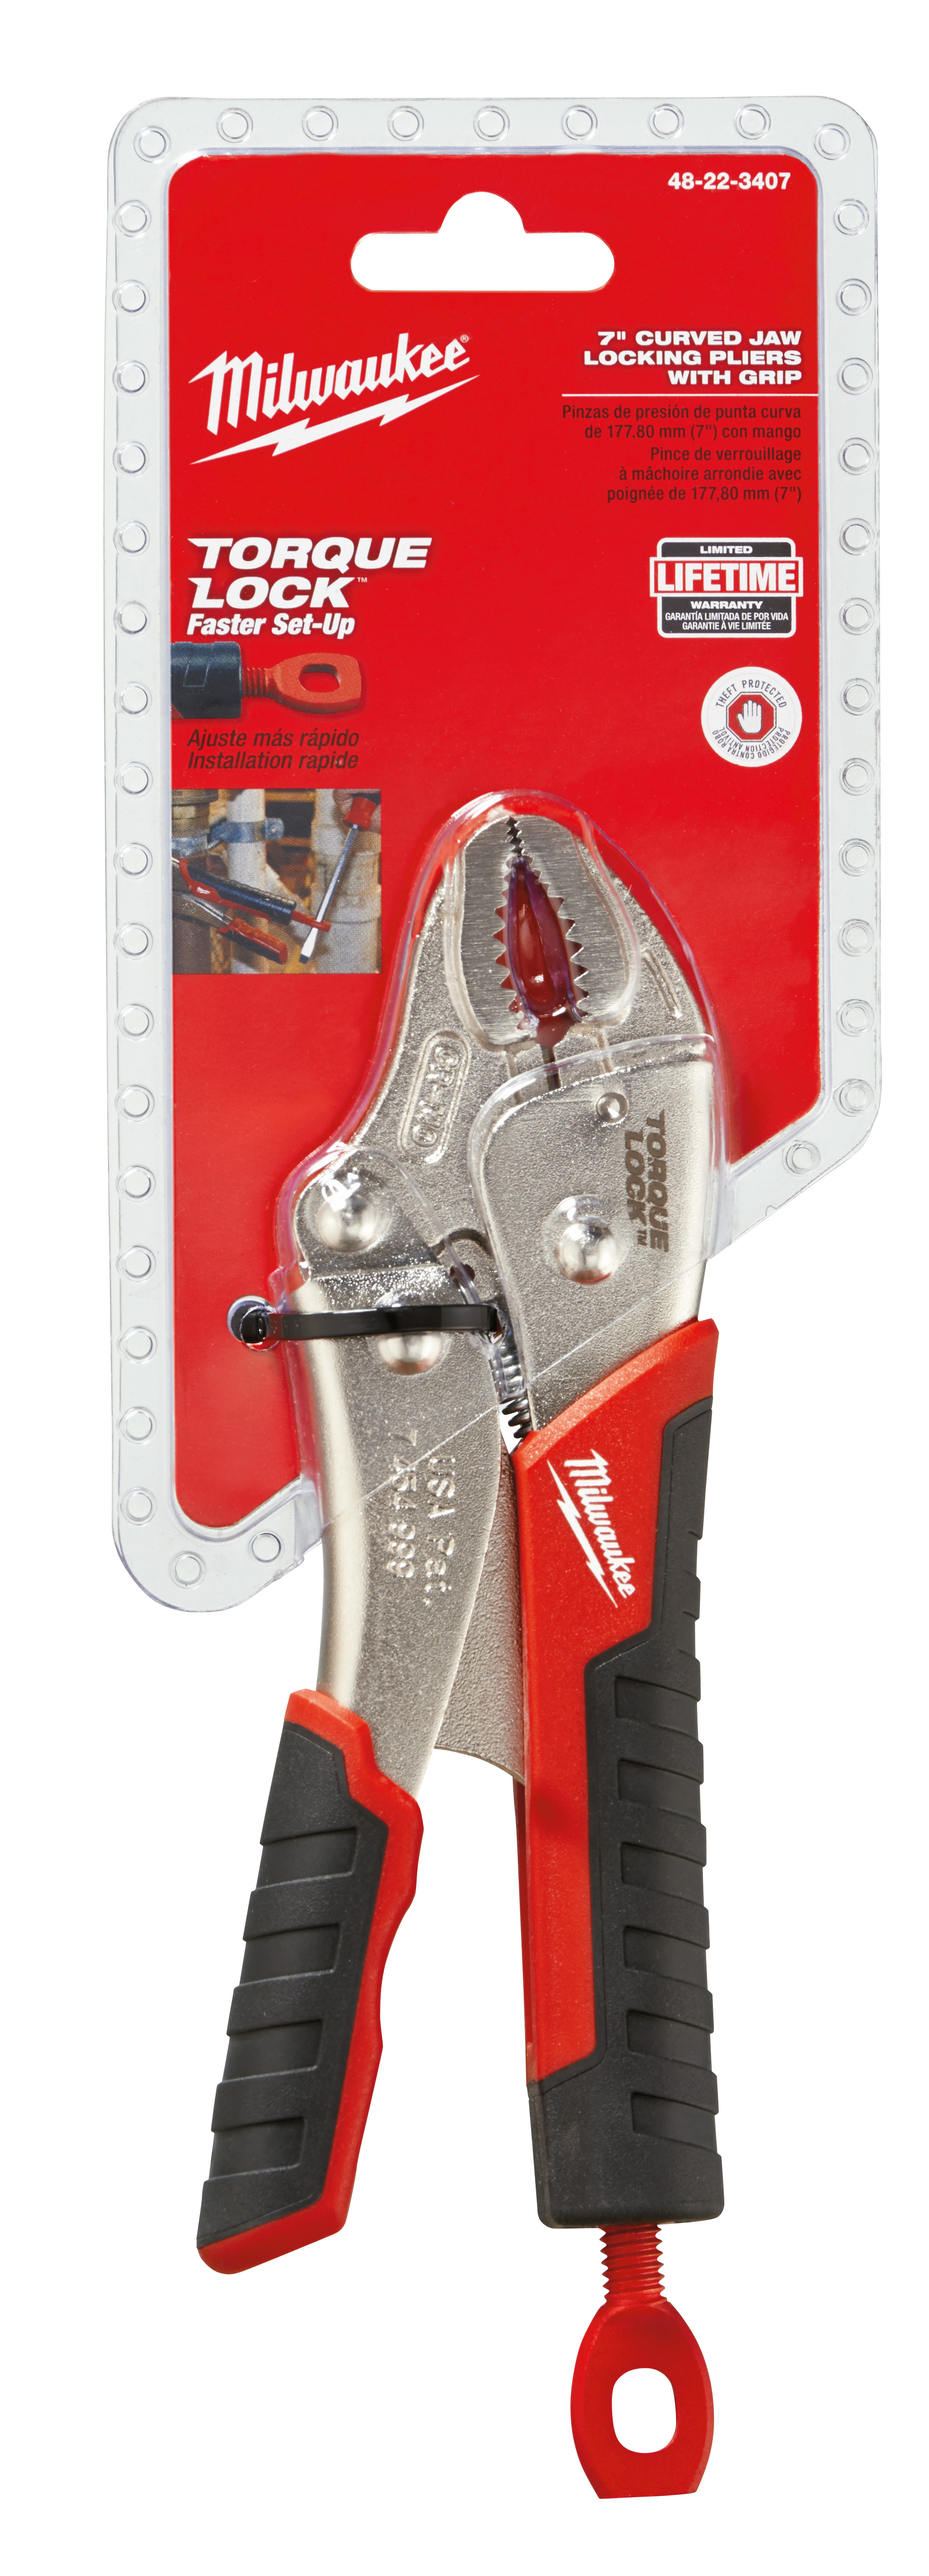 Milwaukee® TORQUE LOCK™ 48-22-3407 1-Handed Lever Locking Plier, 1 in Nominal, 1-5/64 in L x 13/32 in W x 13/32 in THK Alloy Steel Curved Jaw, 7 in OAL